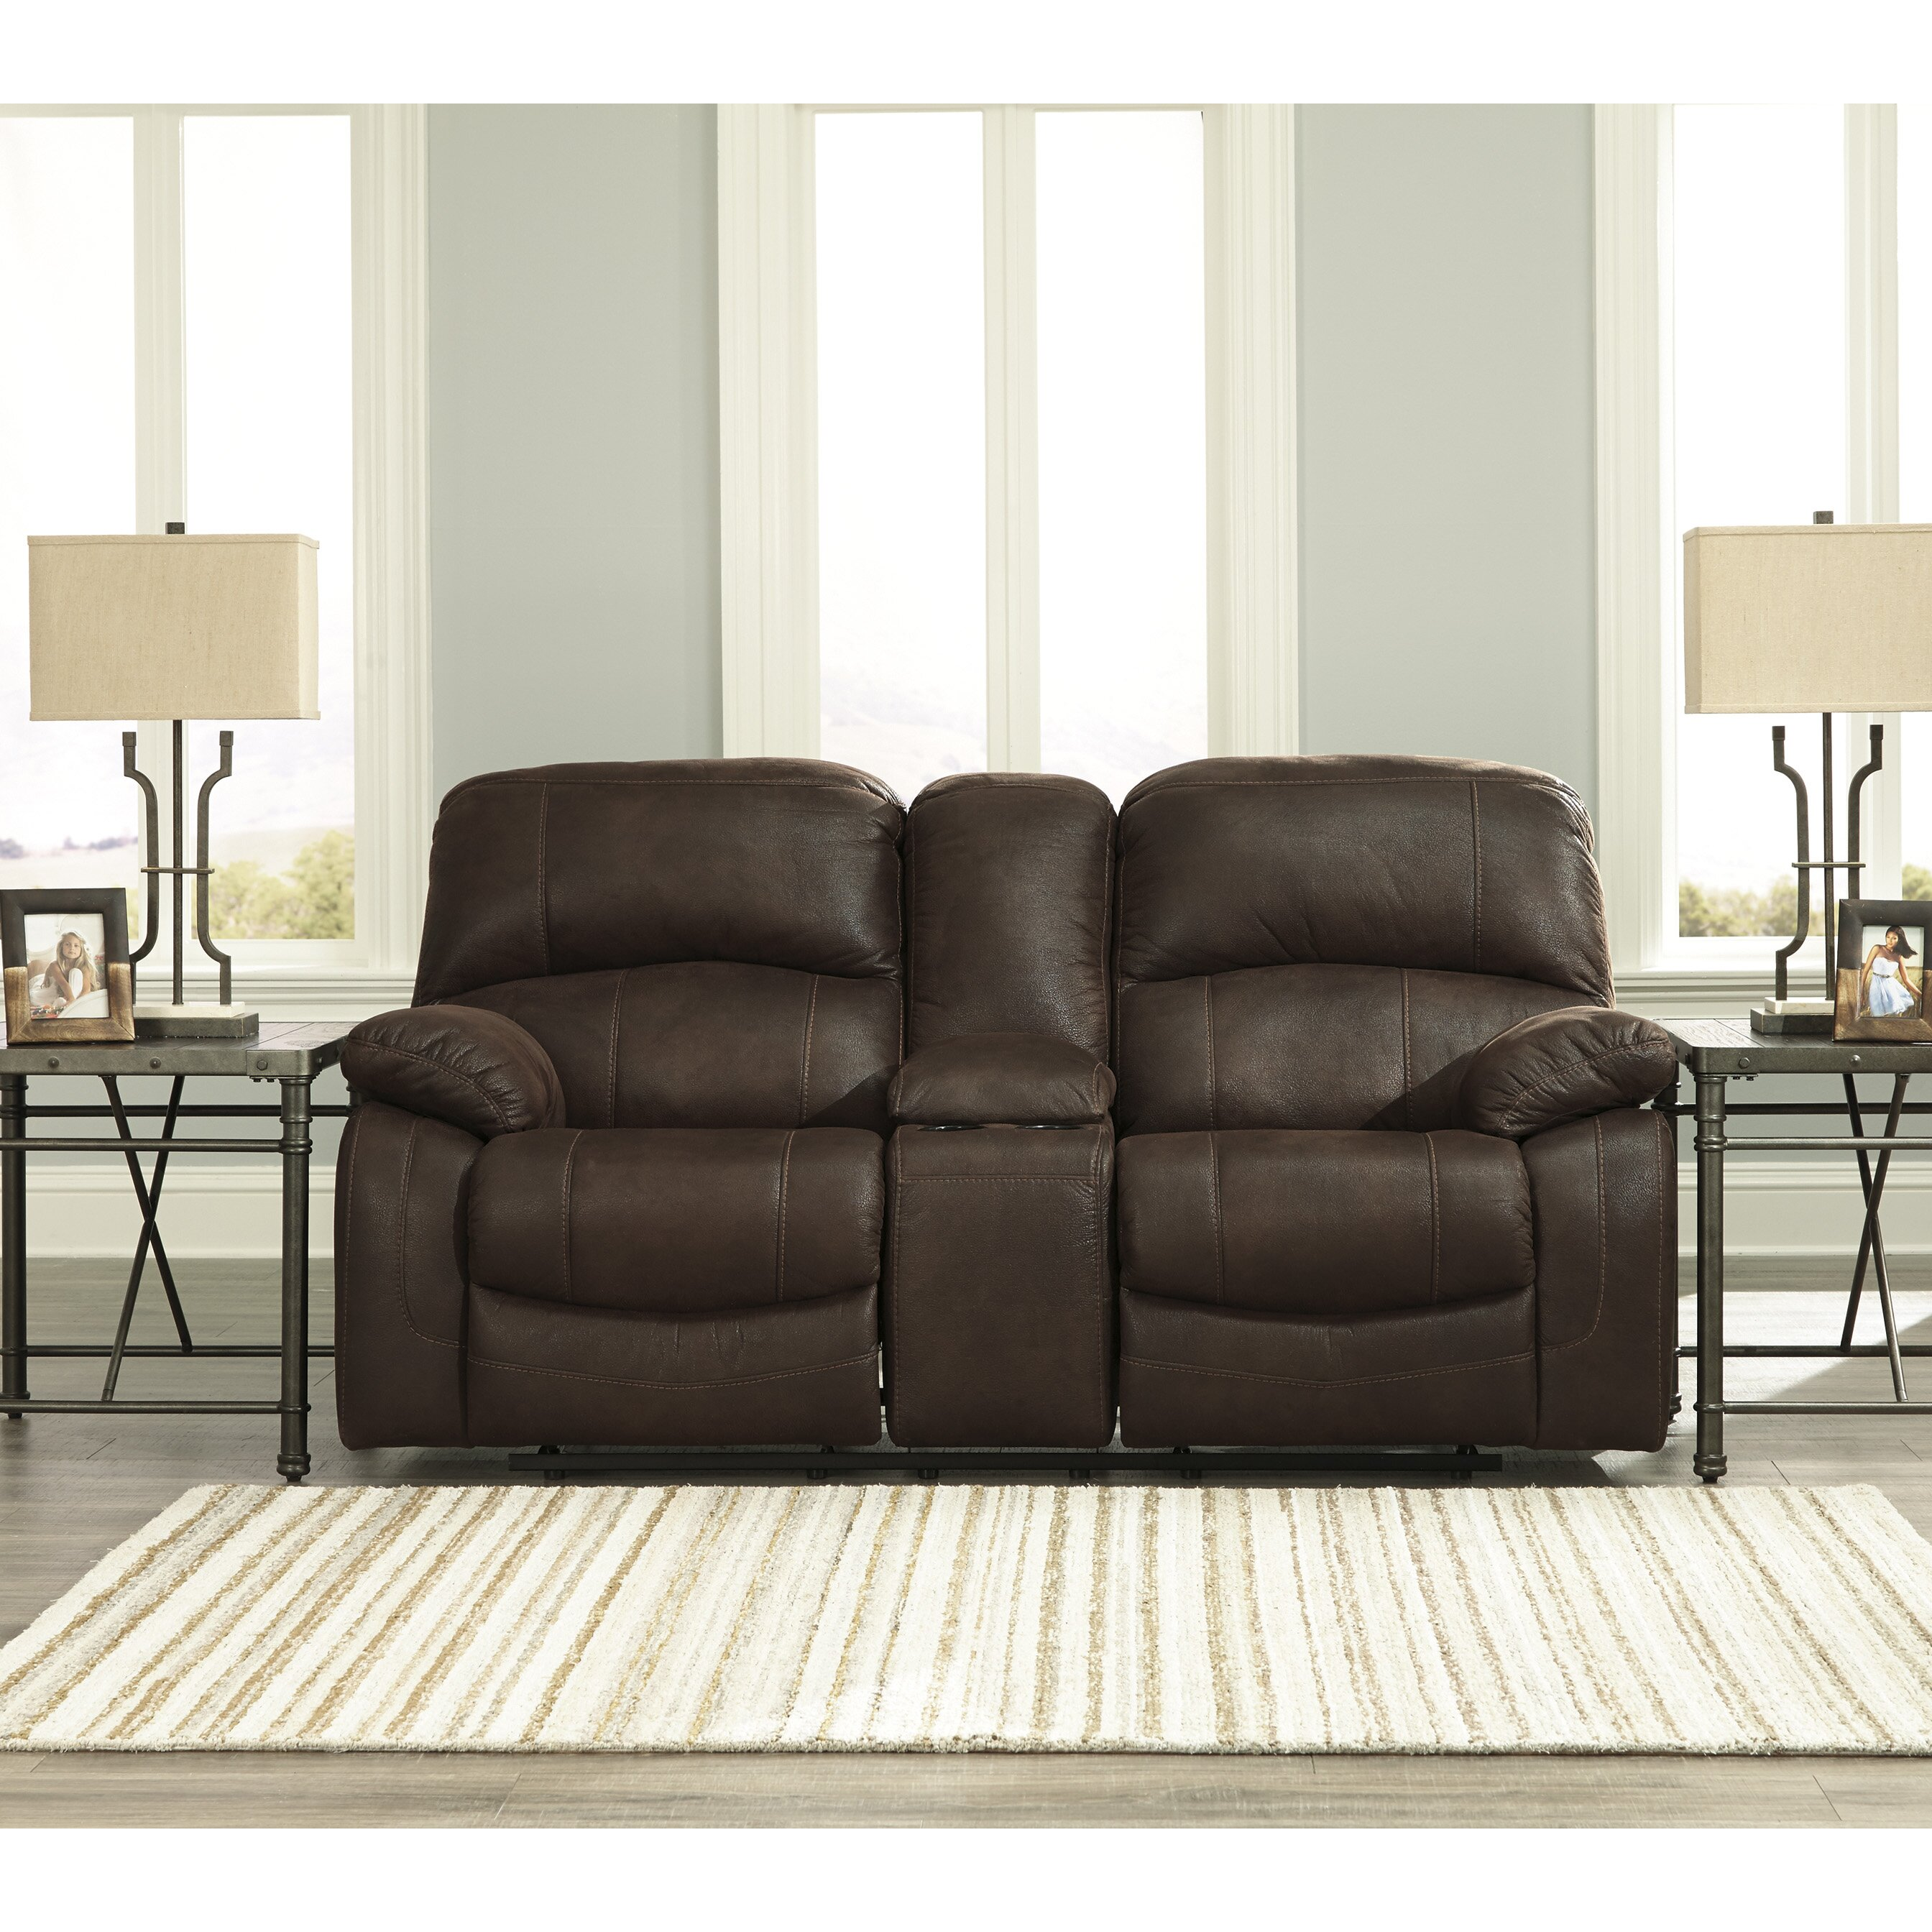 Signature Design By Ashley Zavier Truffle Glider Reclining